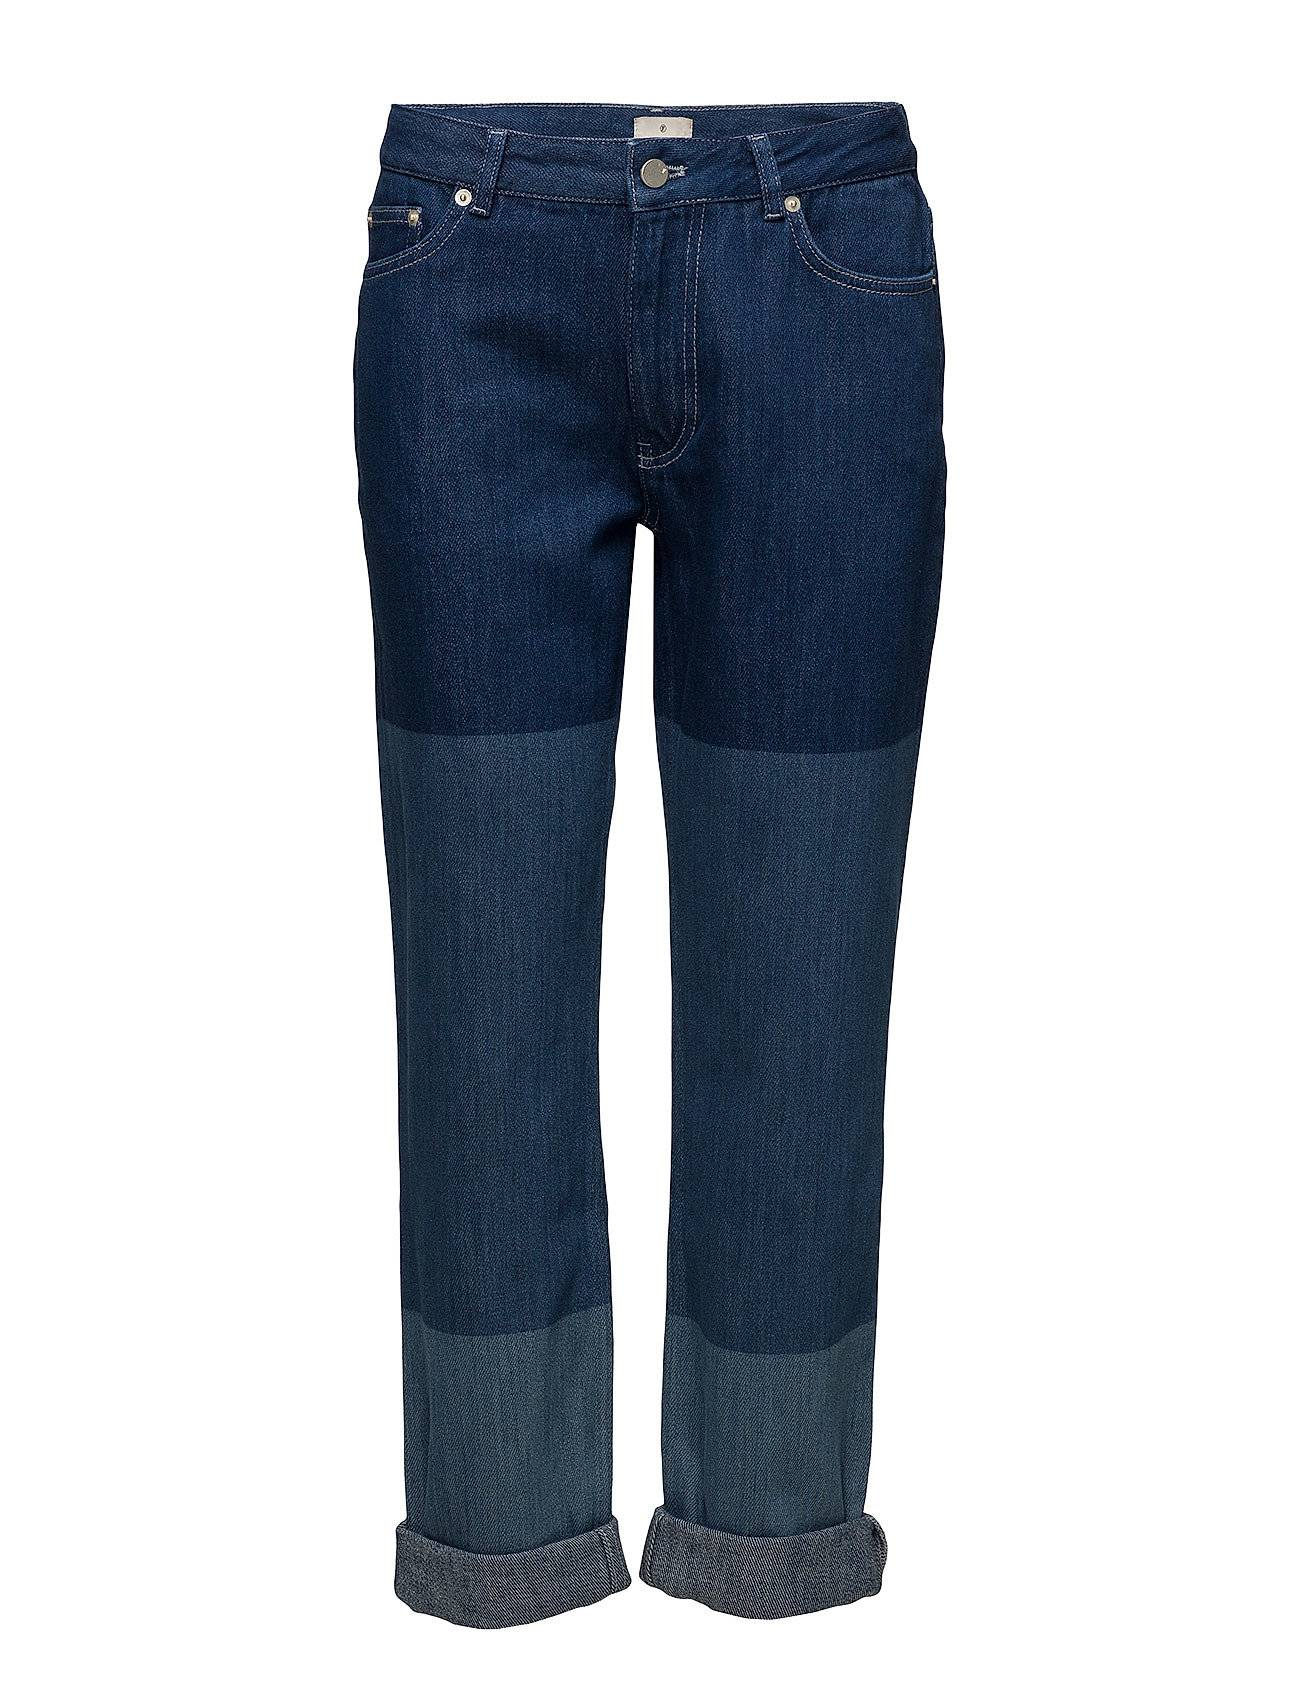 French Connection Boyfit Tri Shade Jeans